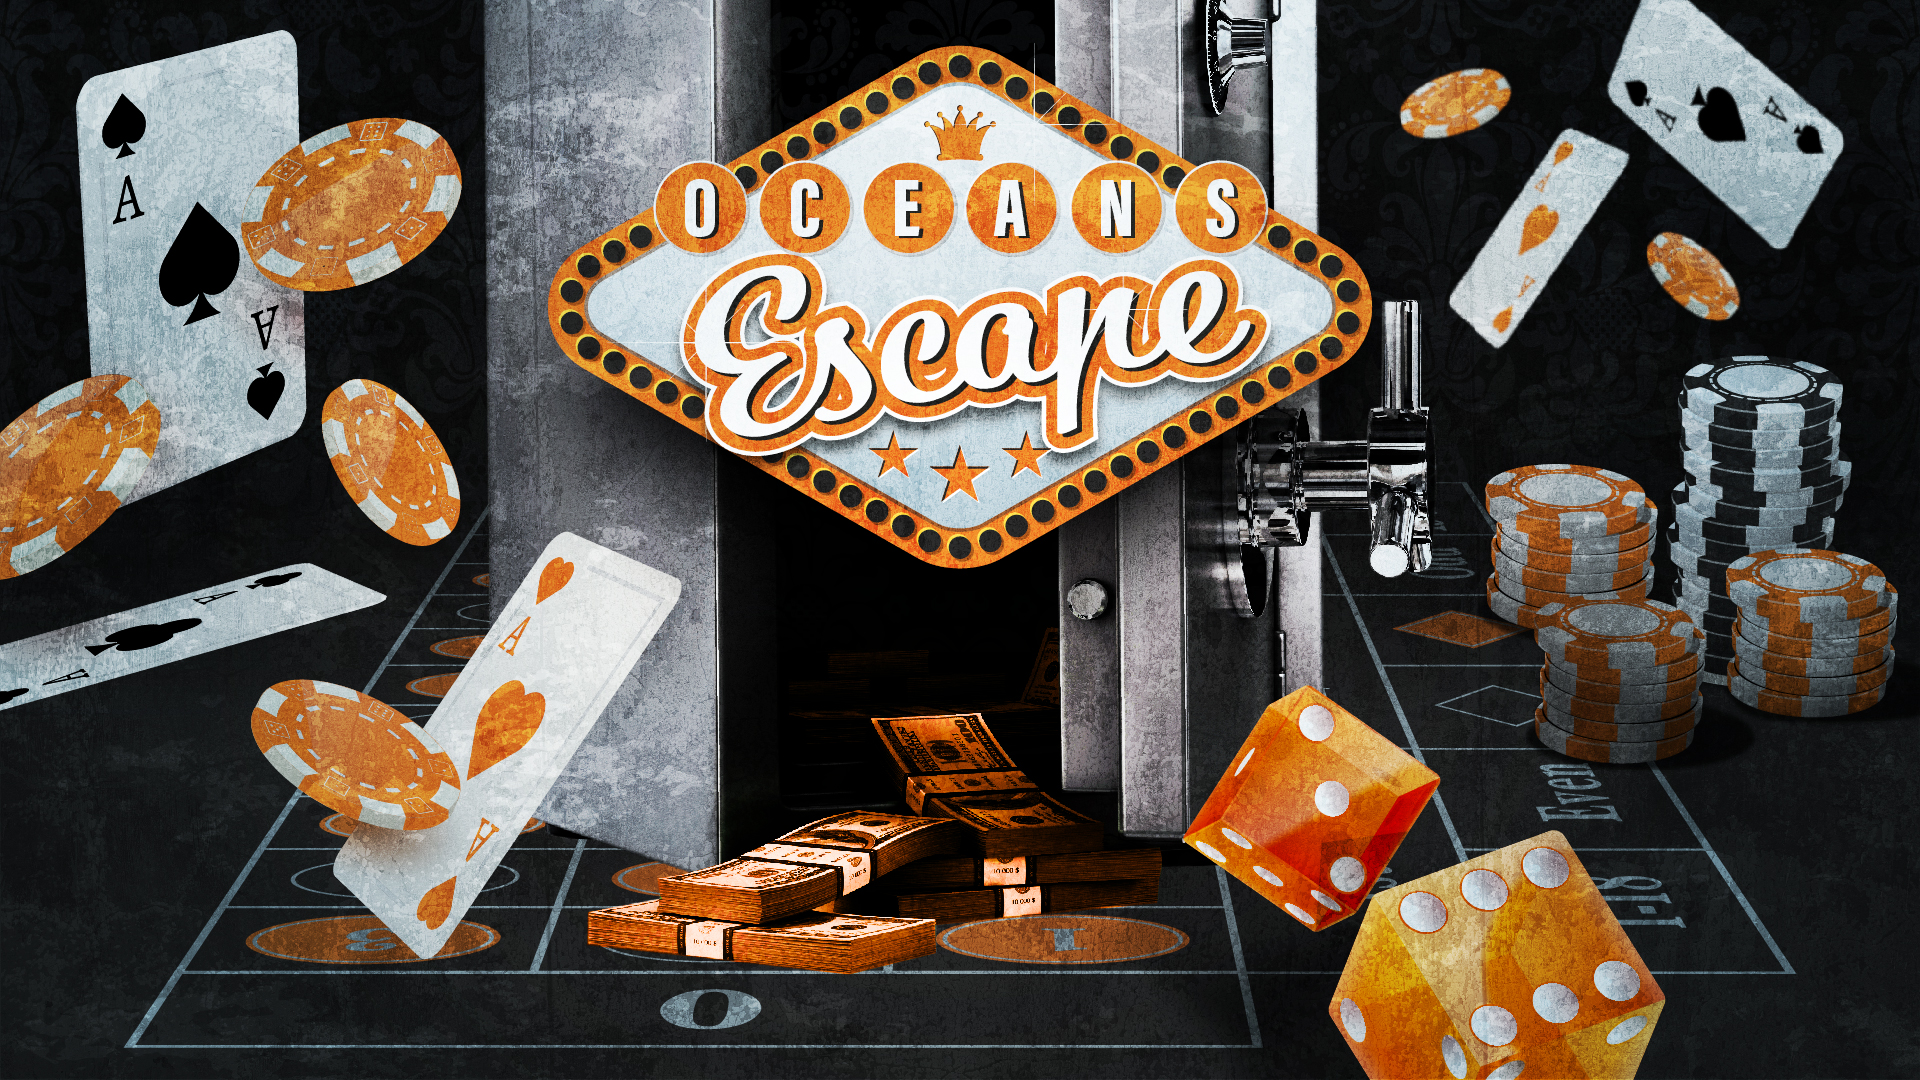 Ocean's Escape - AVAILABLE AT HAYMARKET:A crack team of thieves attempt to rob a casino after-hours. Players must work together to steal the gold from the casino safe and find an inconspicuous method of escape...but there's a twist! During the heist, players may come across other valuable items: poker chips; cash; and high-value data. They may choose to bank these items for the good of the group - or stash them away for themselves.